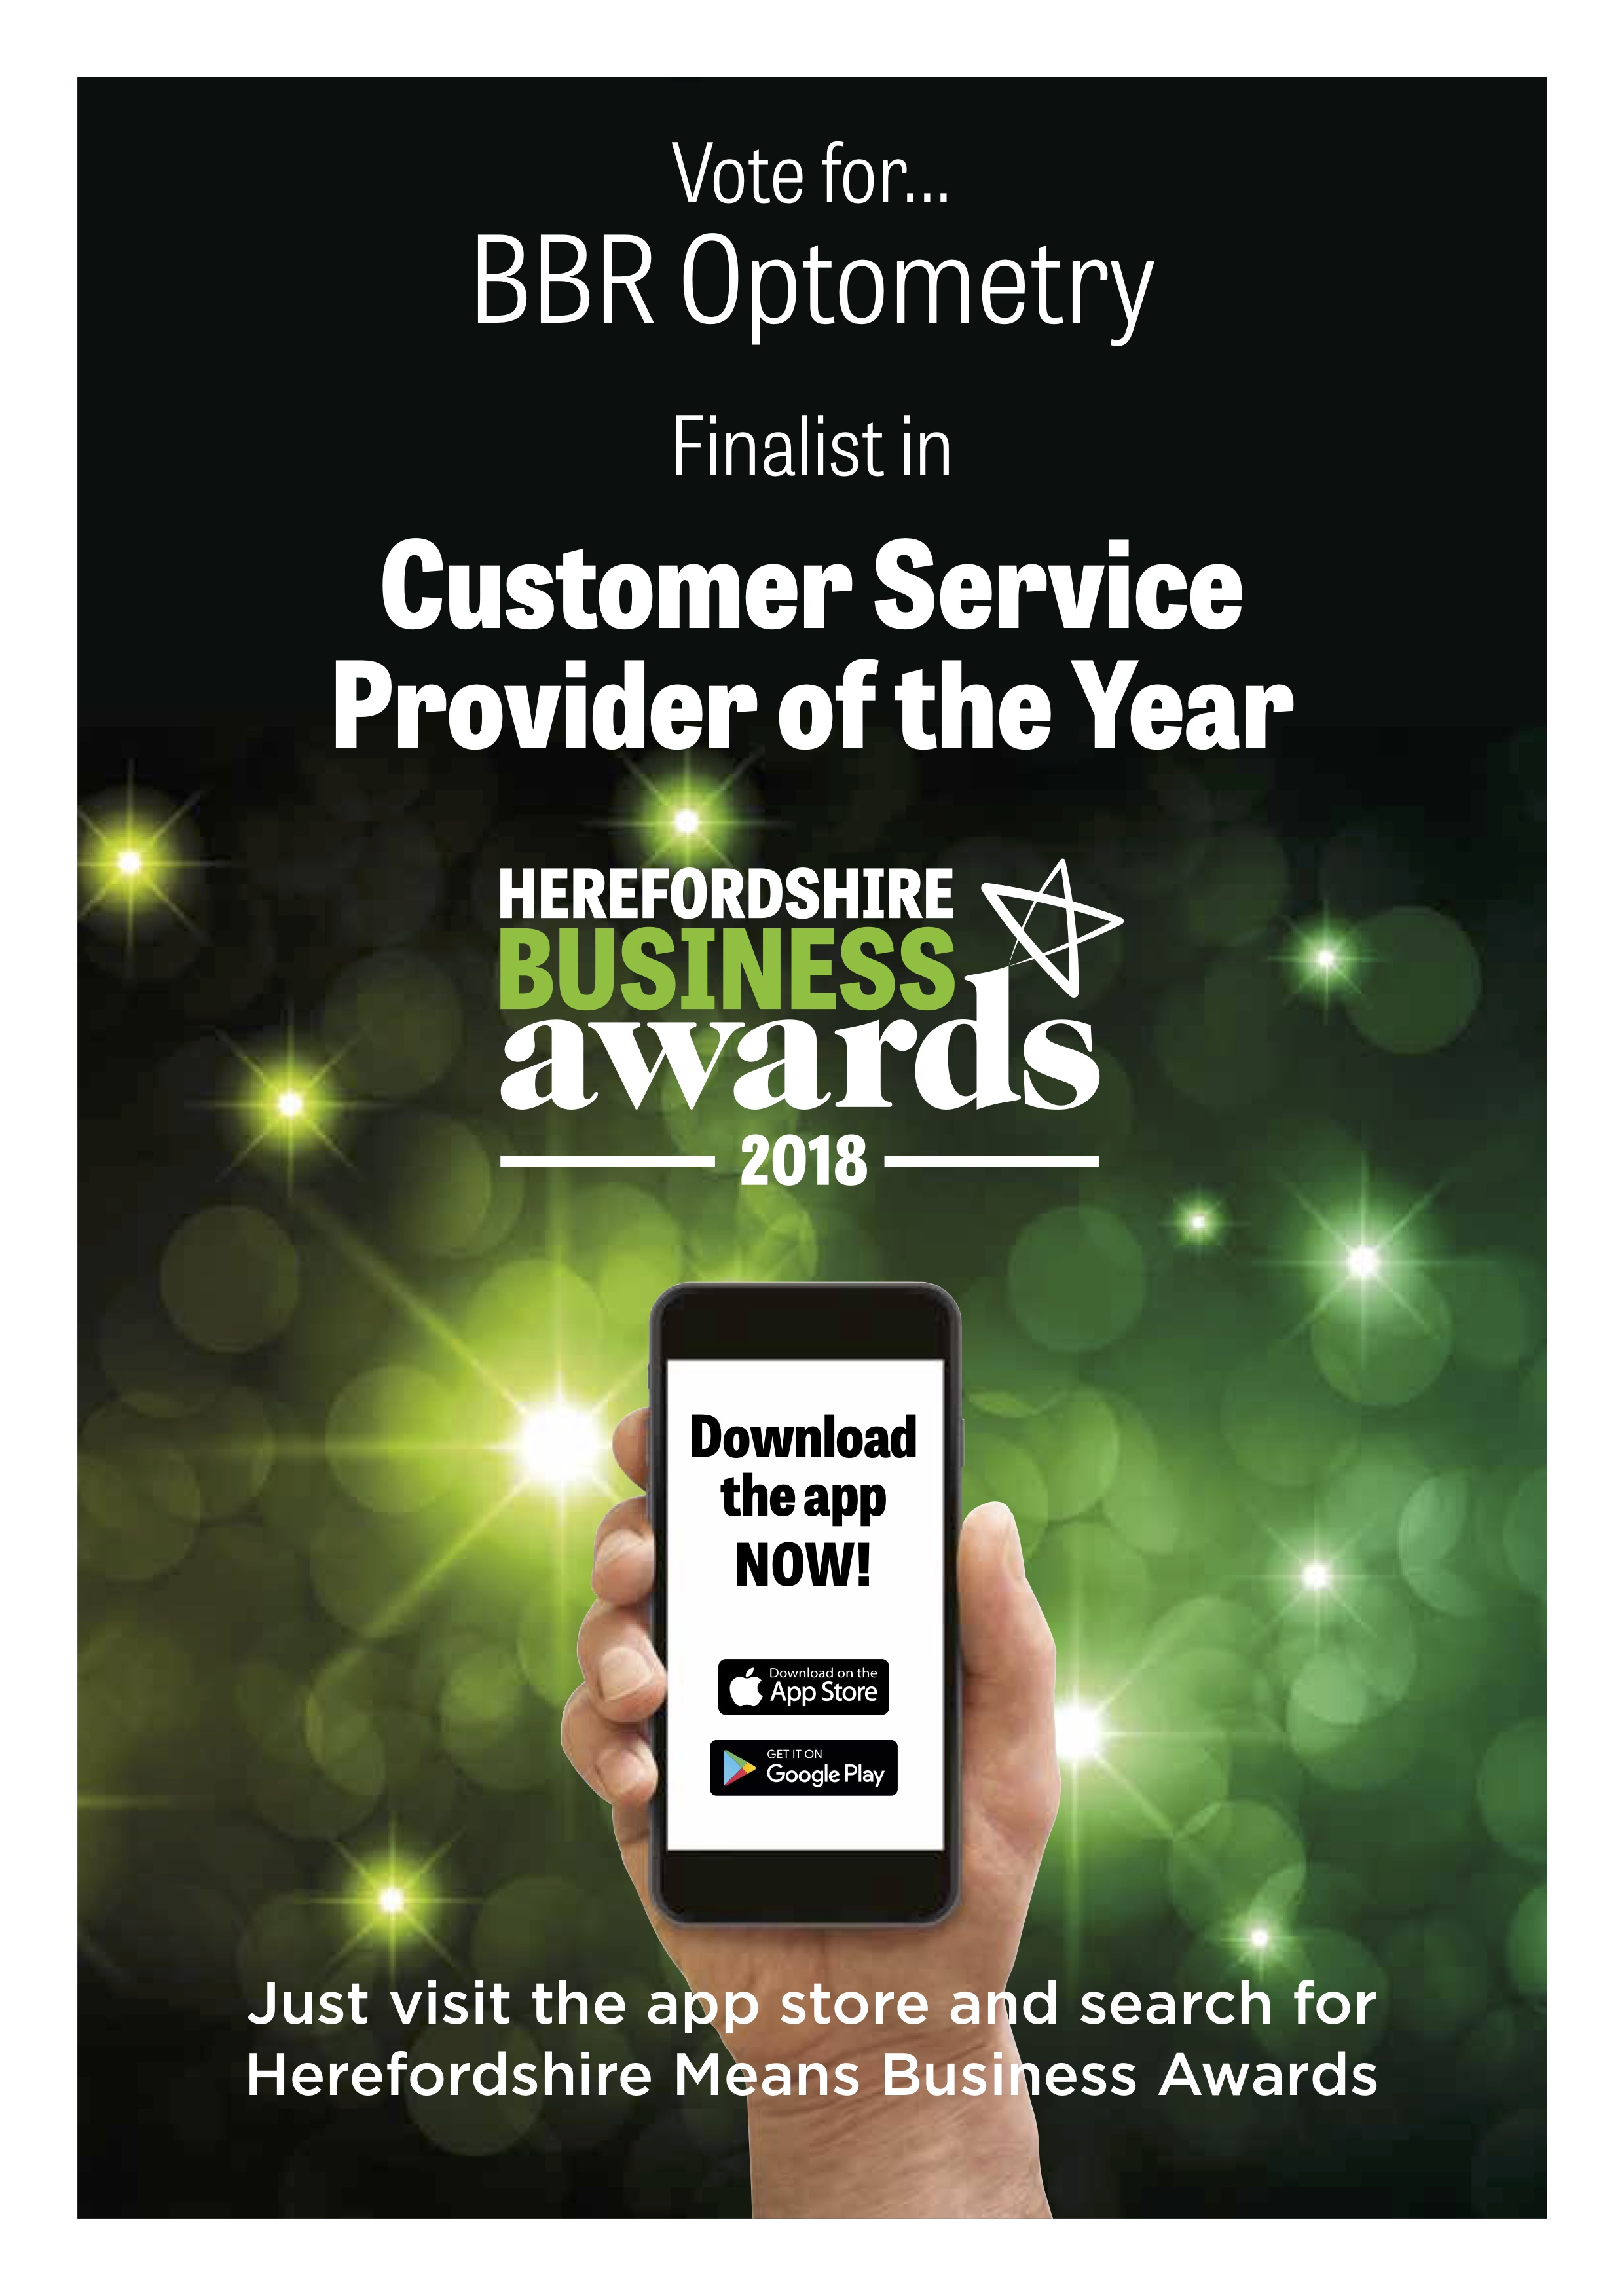 BBR shortlisted for two top business awards – vote for us now